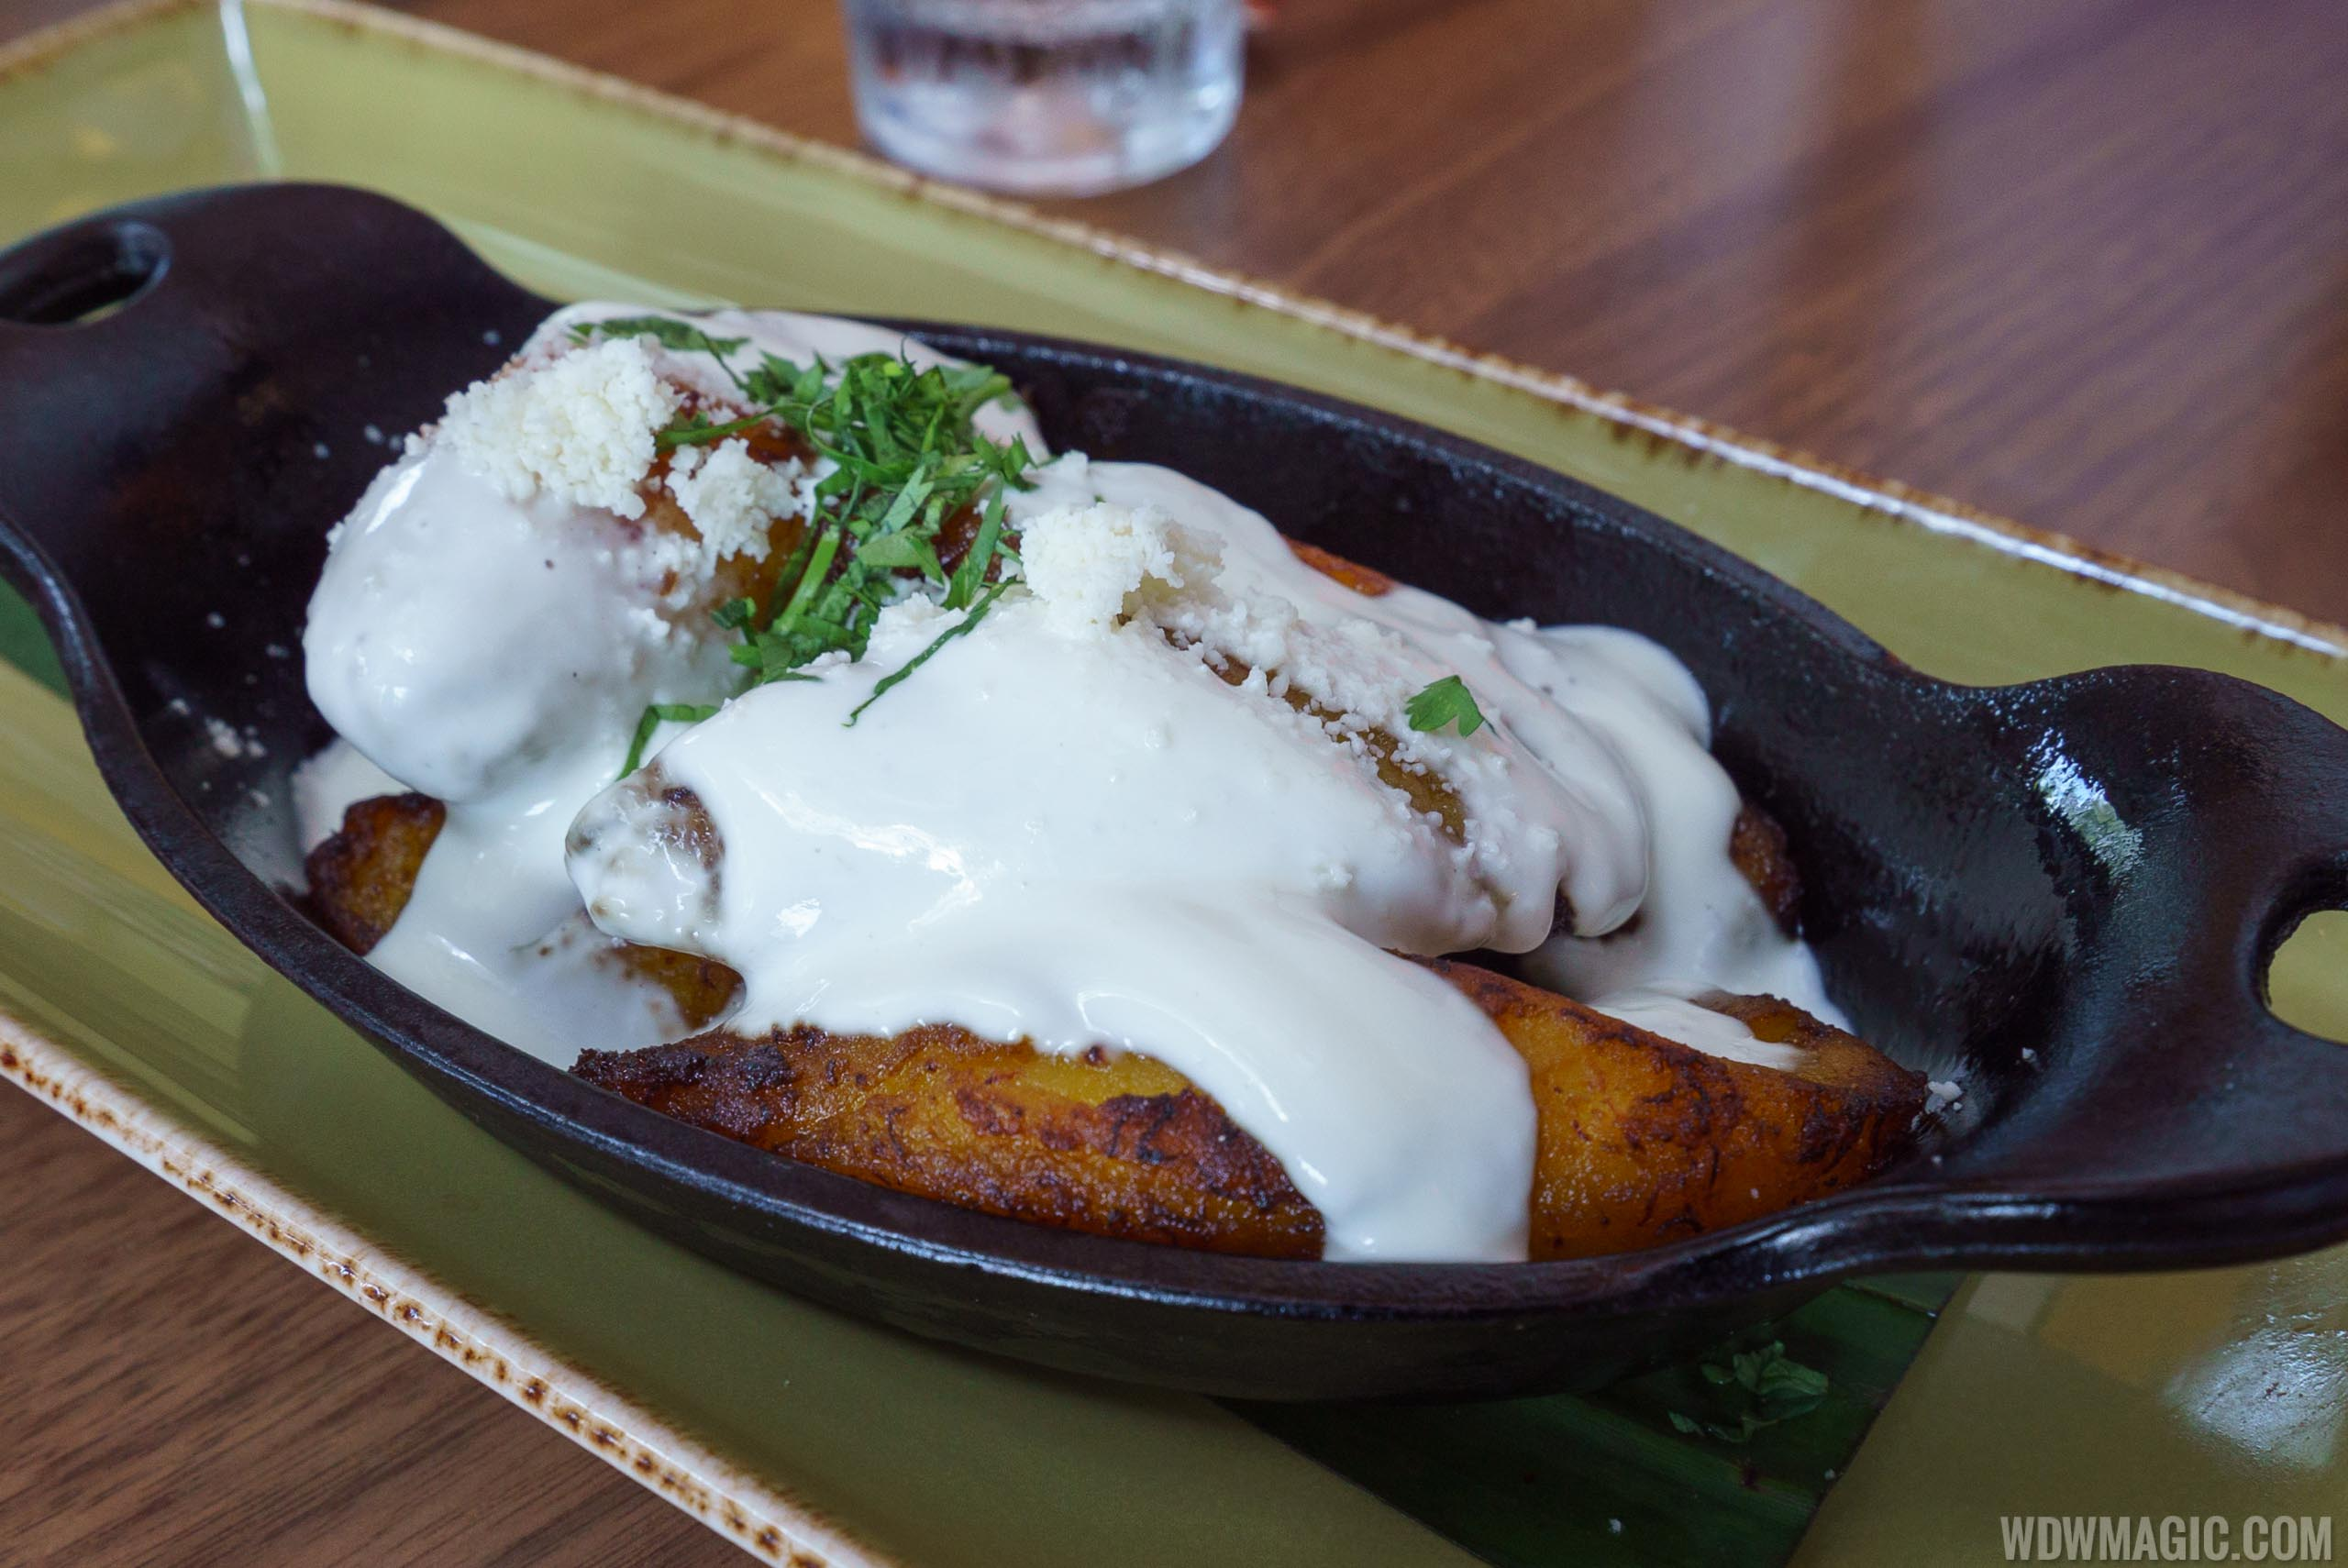 Frontera Cocina - Fried Plantains